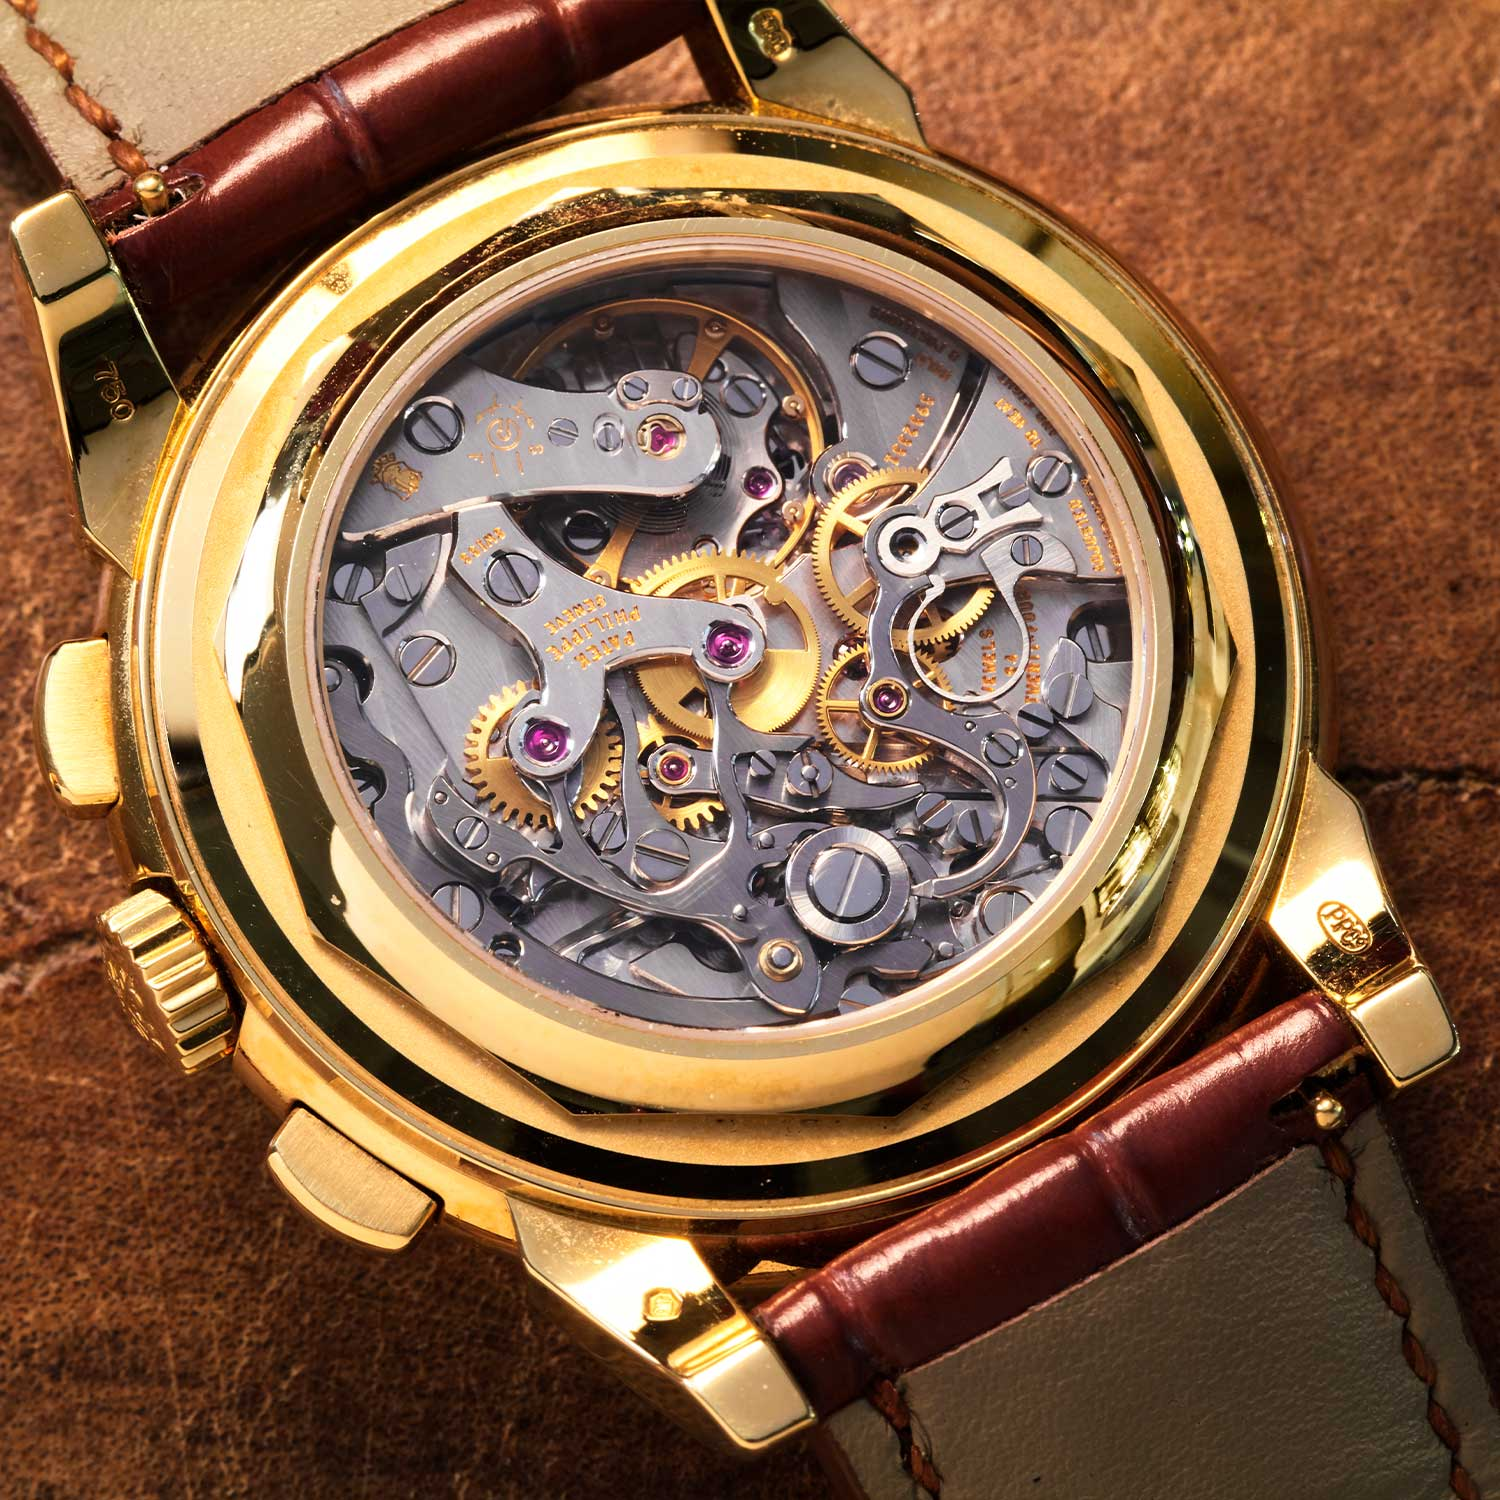 Caseback view of Wei's Patek Philippe Perpetual Calendar Chronograph ref. 5970 showcasing the Lemania-based CH 27-70 (©Revolution)